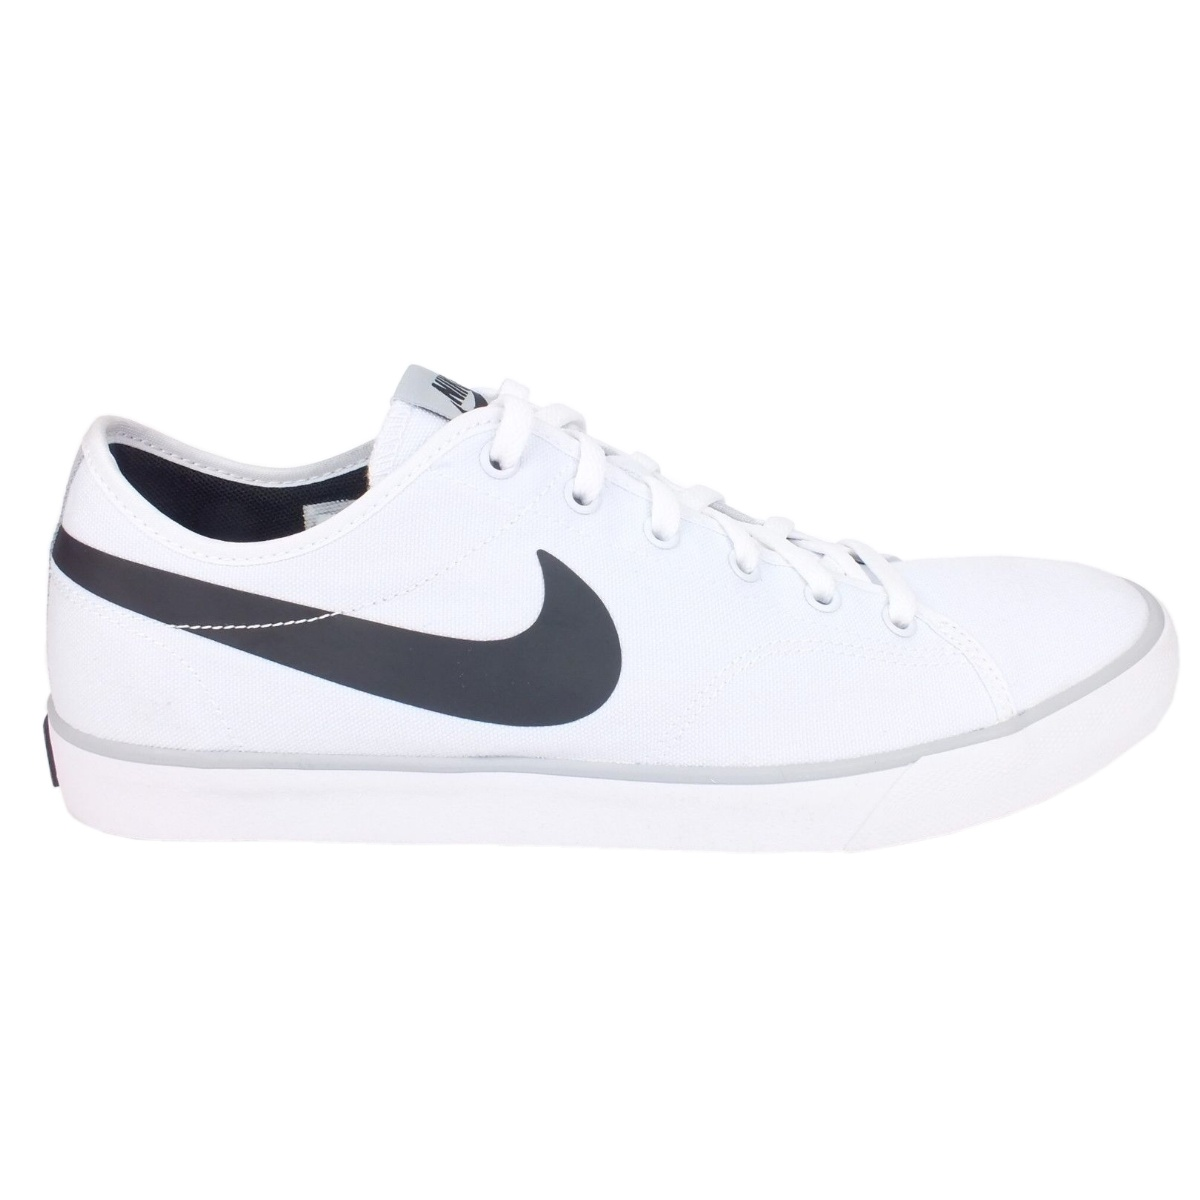 nike primo court shoes sneakers casual shoes sneakers. Black Bedroom Furniture Sets. Home Design Ideas